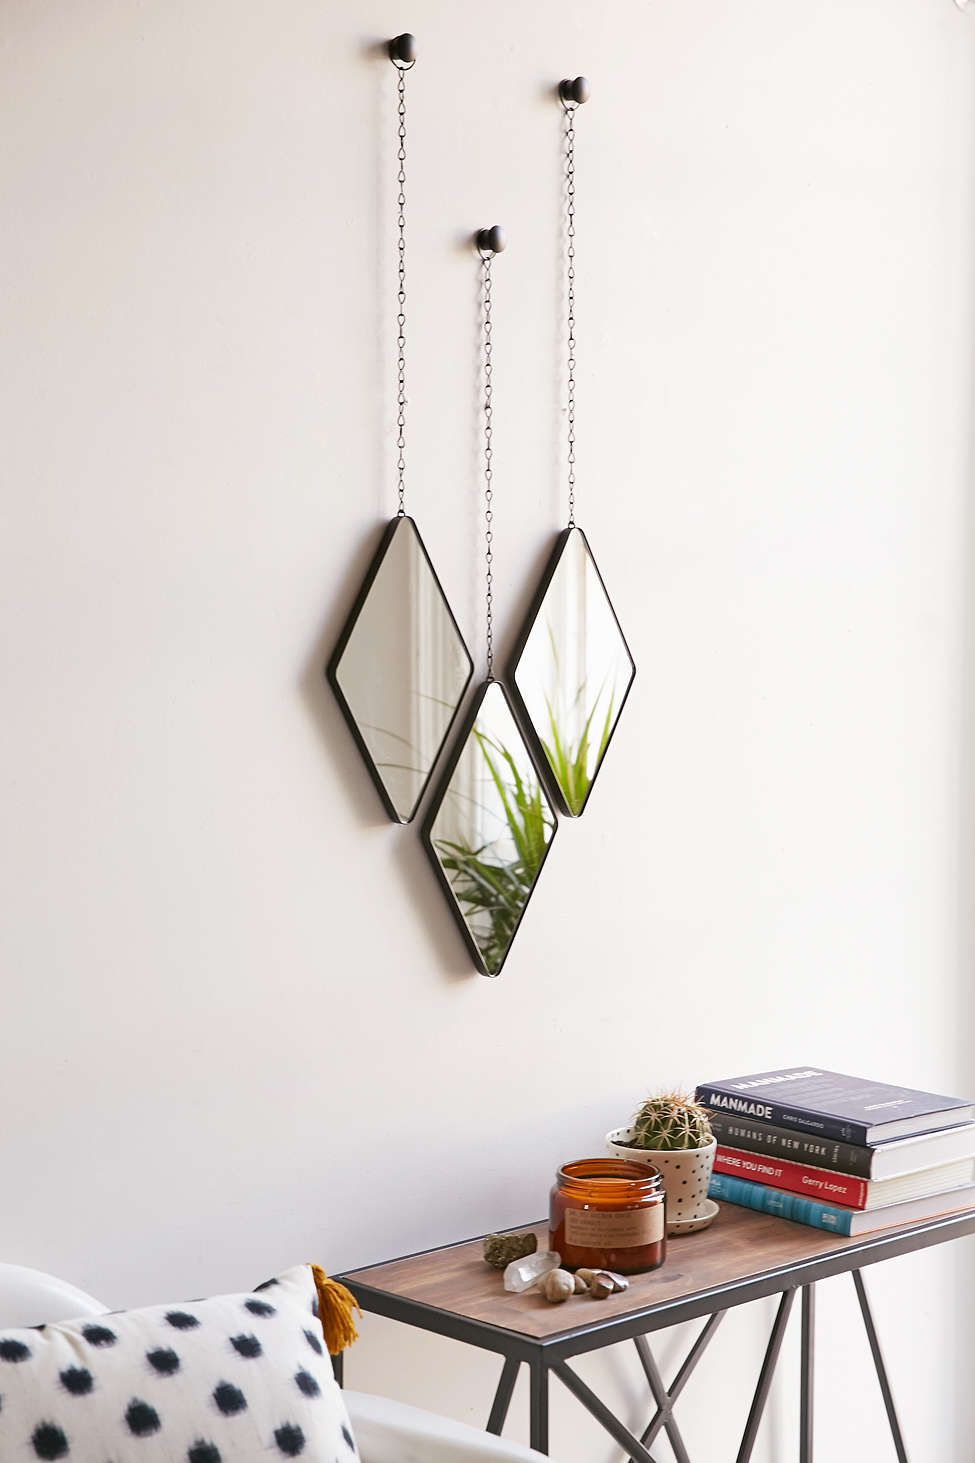 Geo hanging mirror set from Urban Outfitters